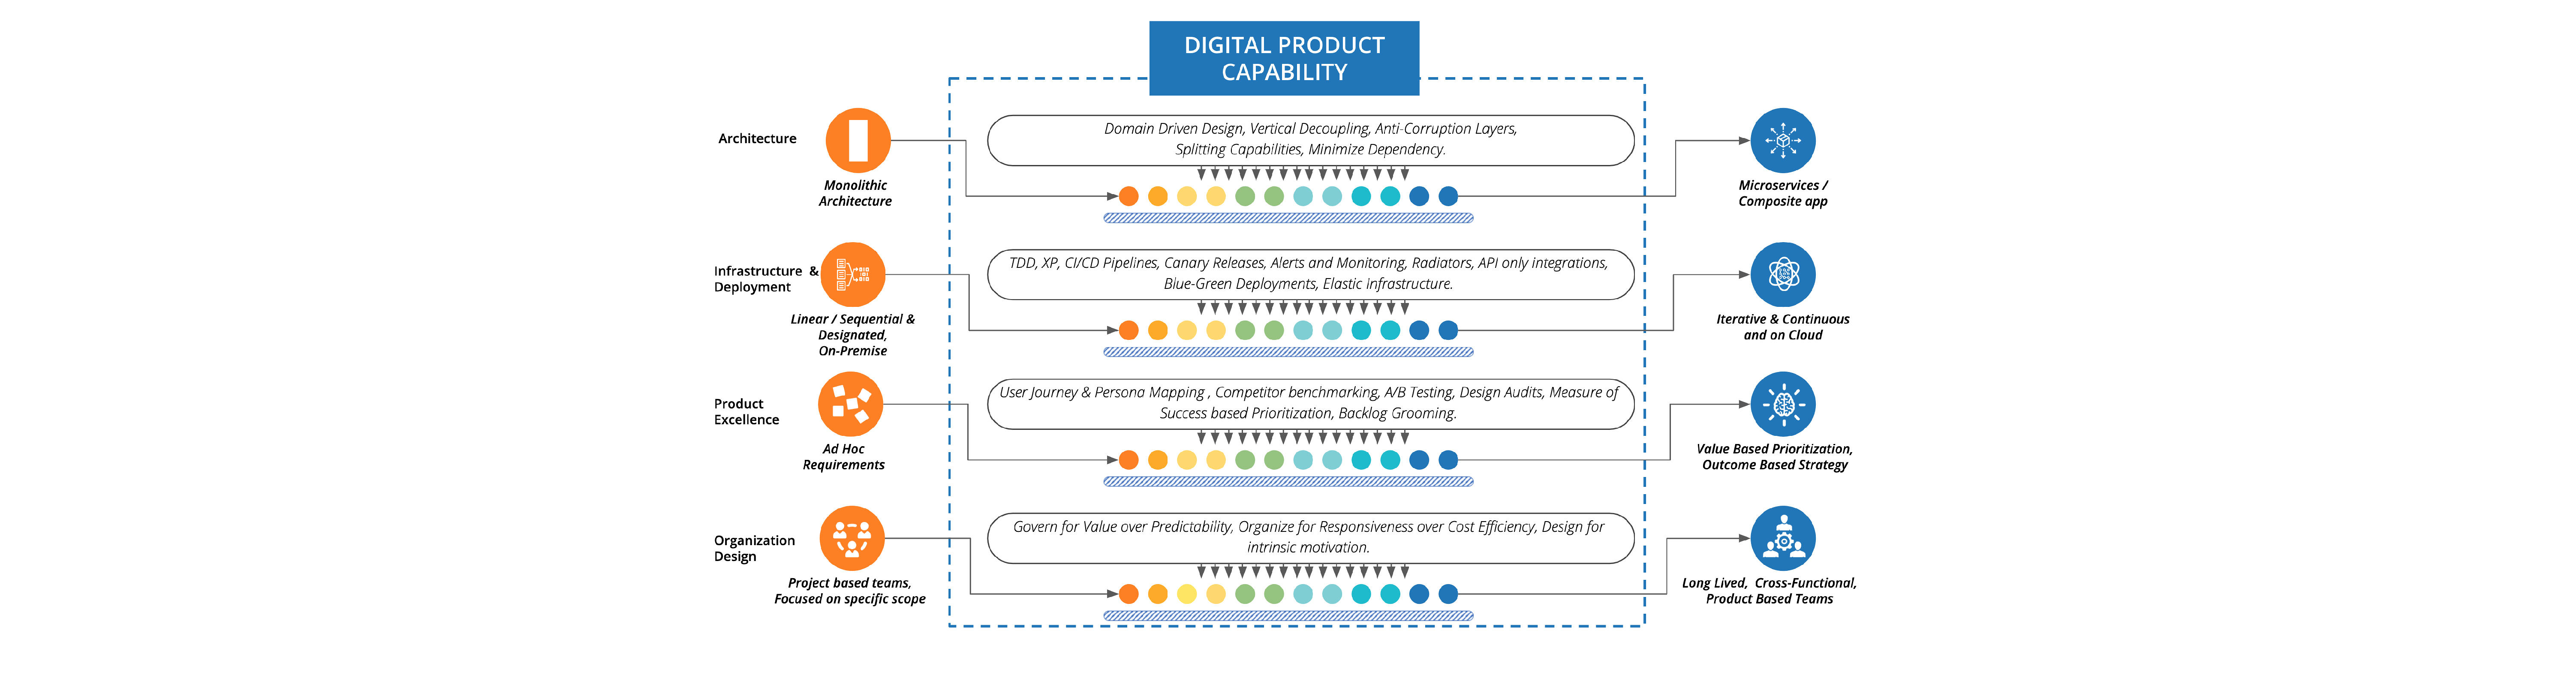 The four parameters to consider when building a digital product capability